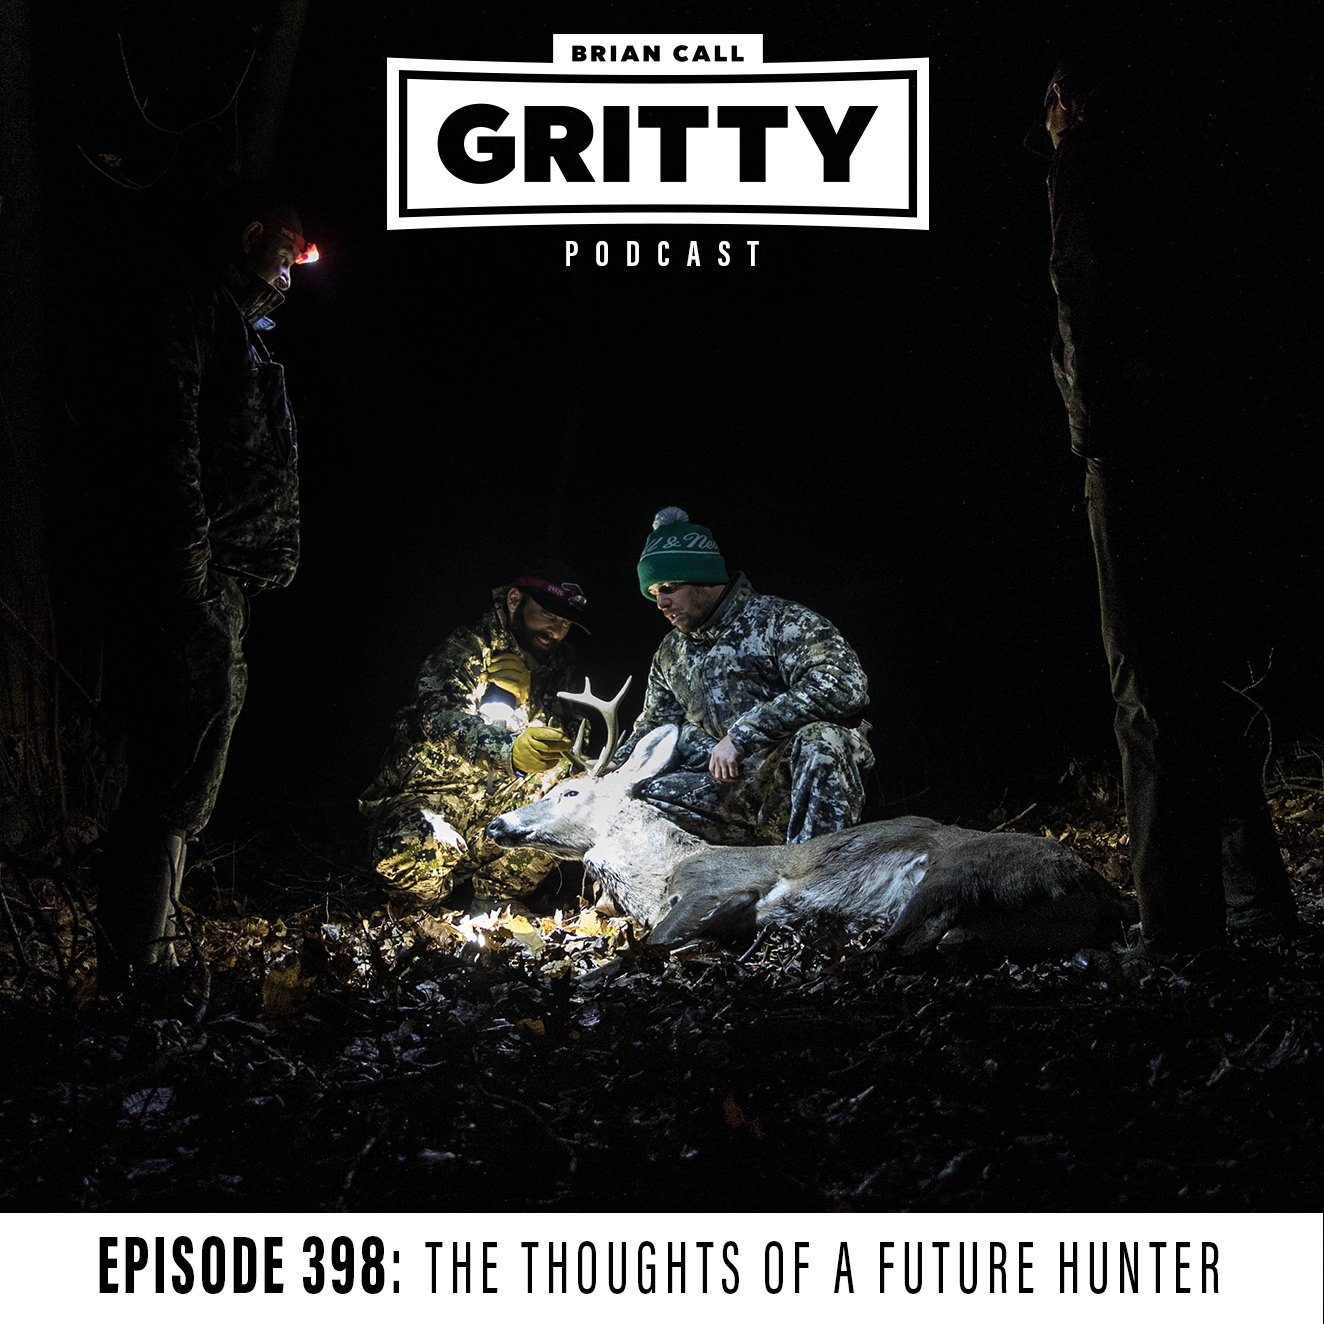 EPISODE 398: THE THOUGHTS OF A FUTURE HUNTER